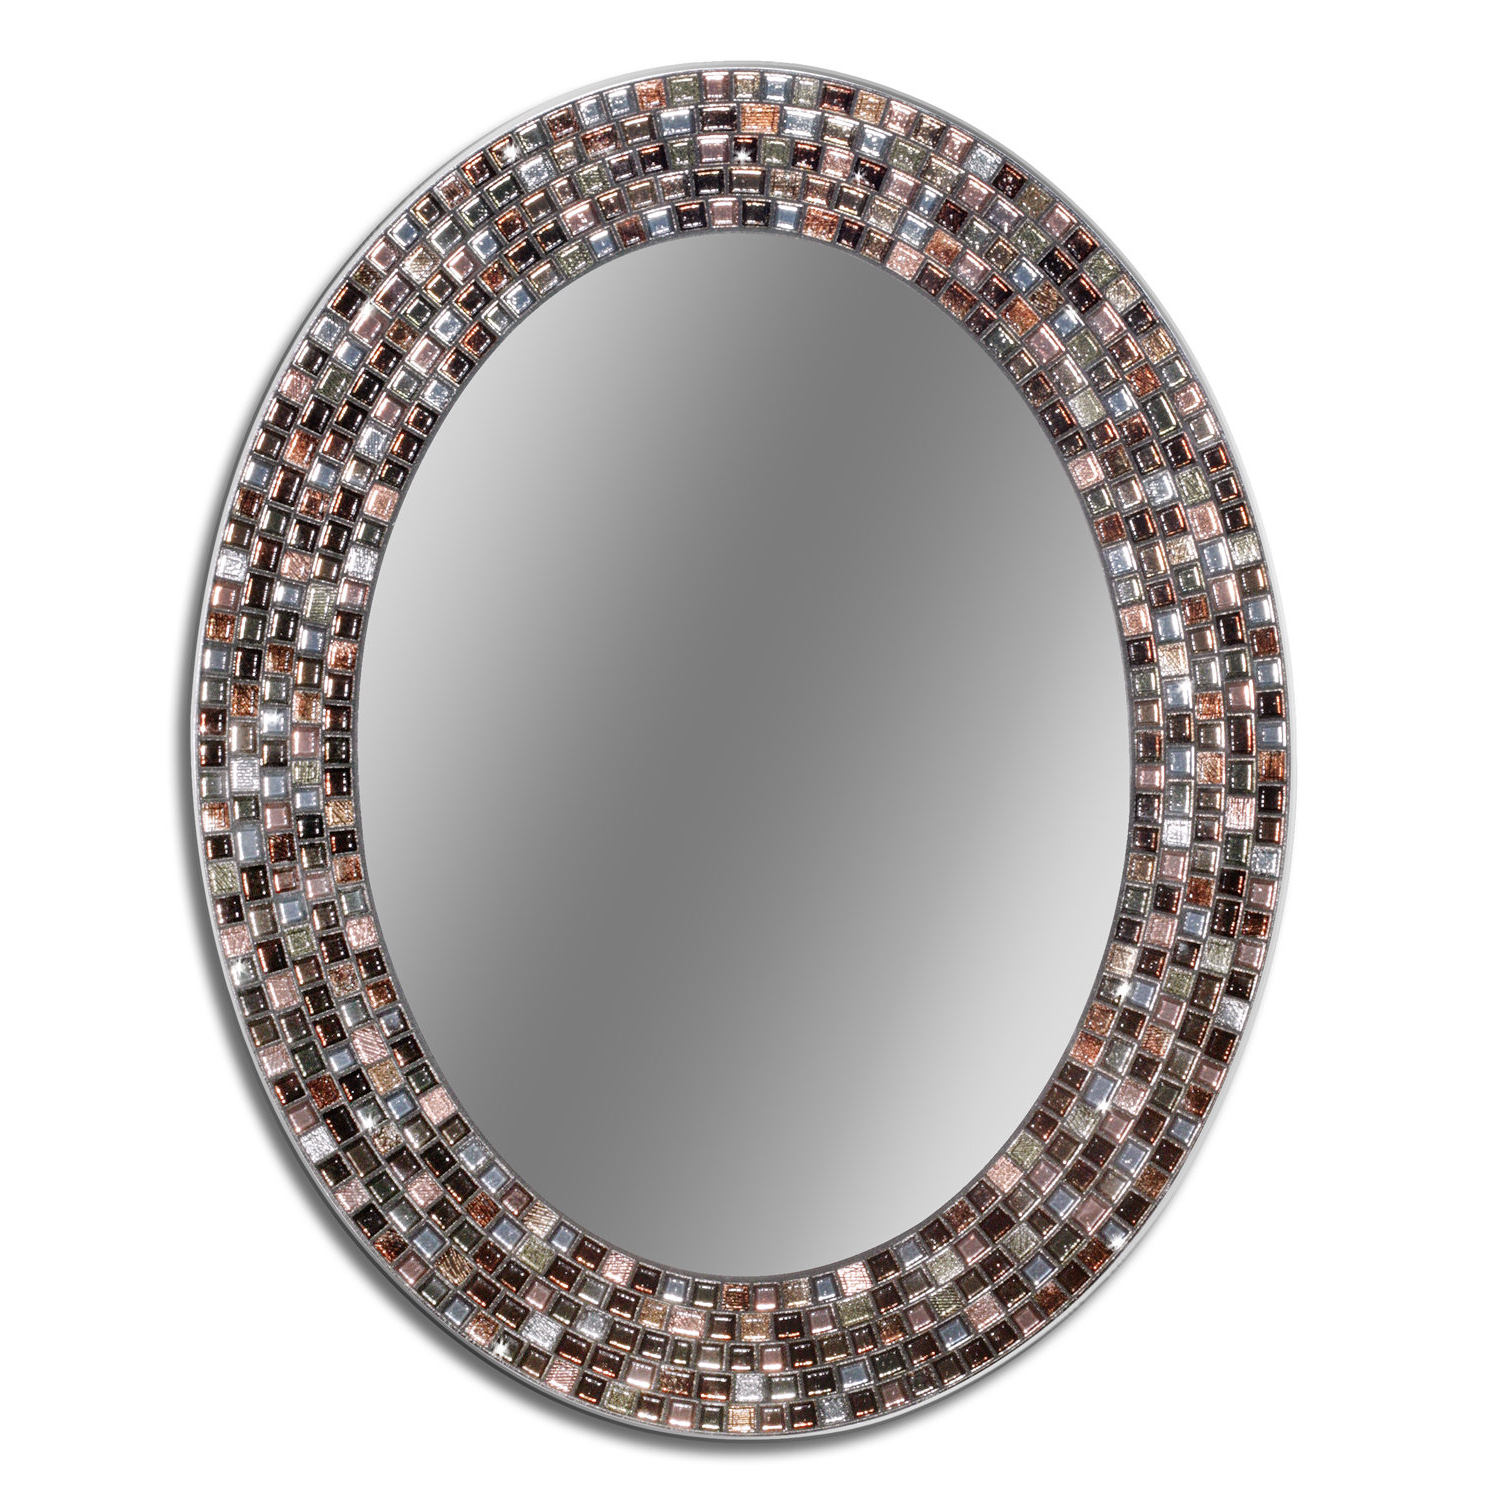 Selden Frameless Oval Mosaic Wall Mirror With Most Recent Mosaic Wall Mirrors (View 15 of 20)